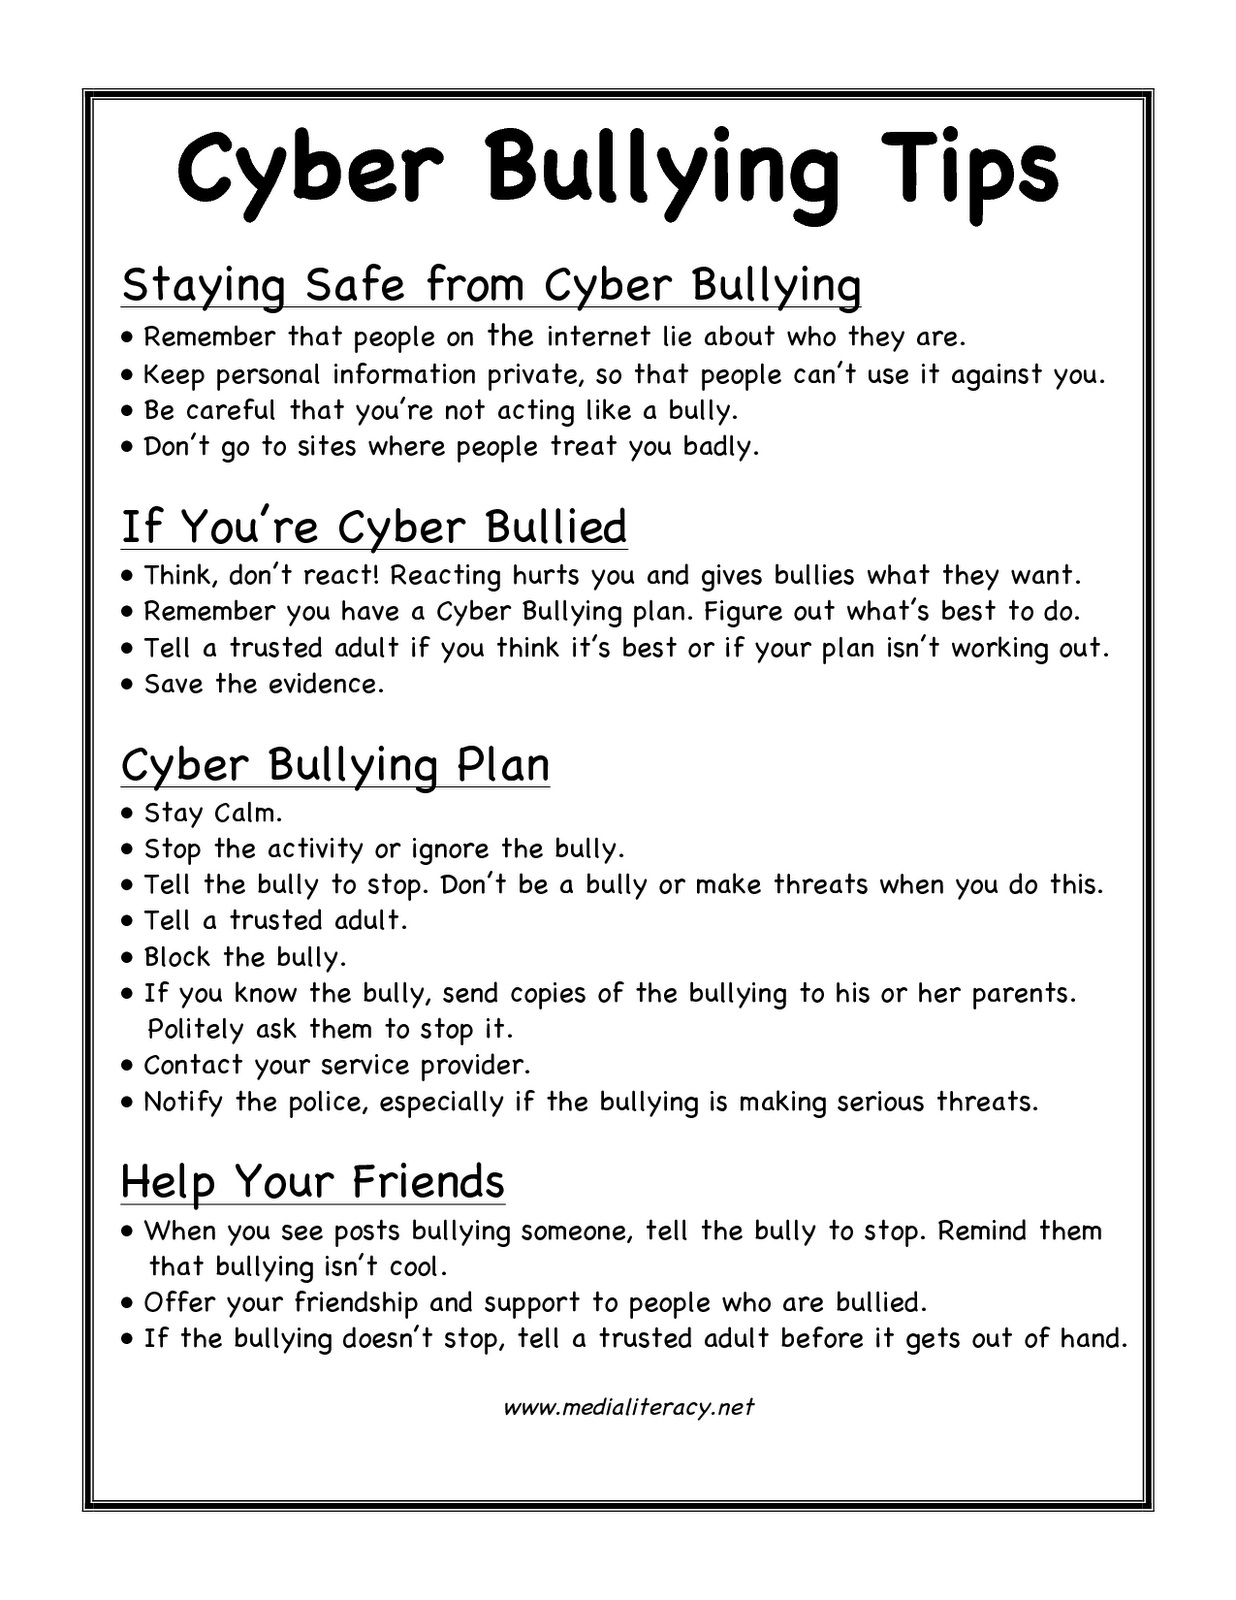 evidence: antibullyingblog.blogspot from september 5, 2011